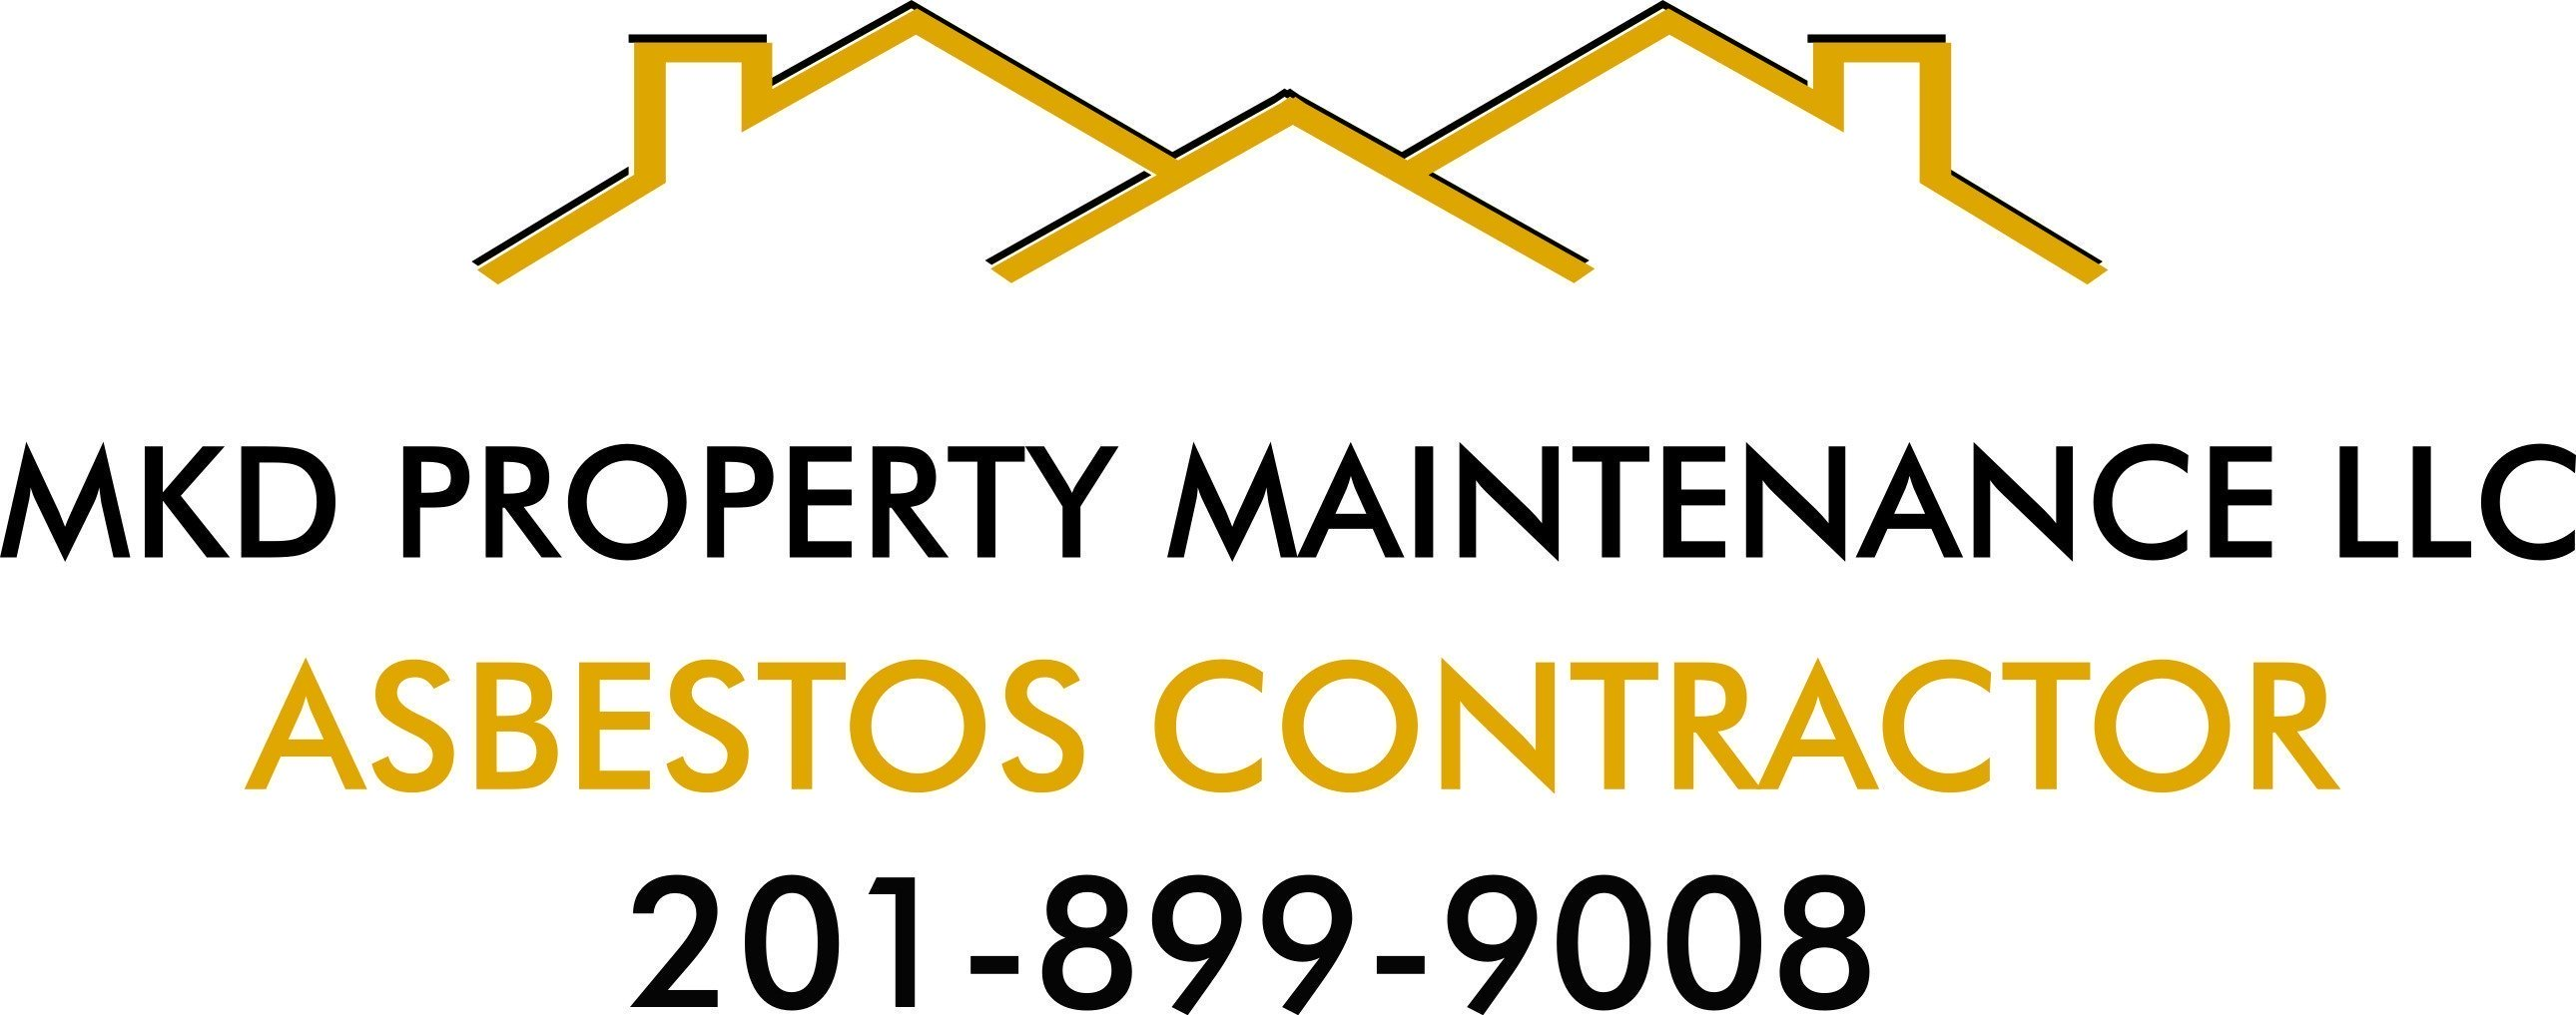 MKD Property Maintenance LLC.